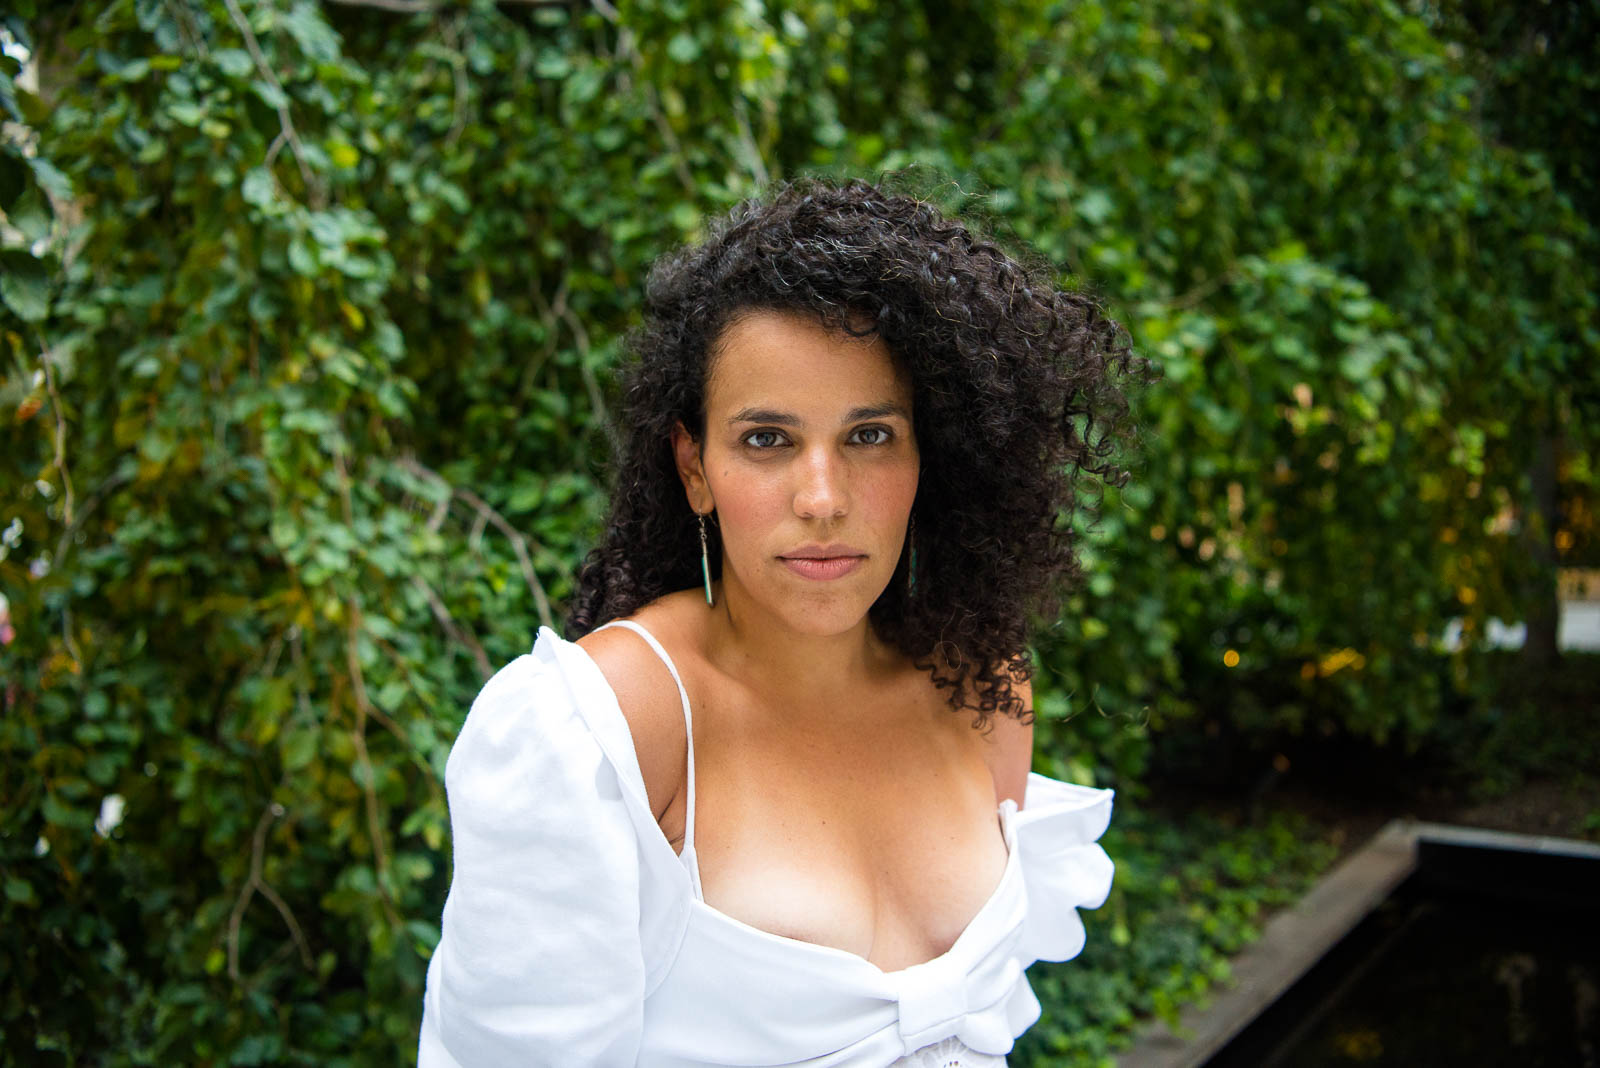 Xenia Rubinos after her performance in MoMA's sculpture garden on Thursday, August 8, 2018.